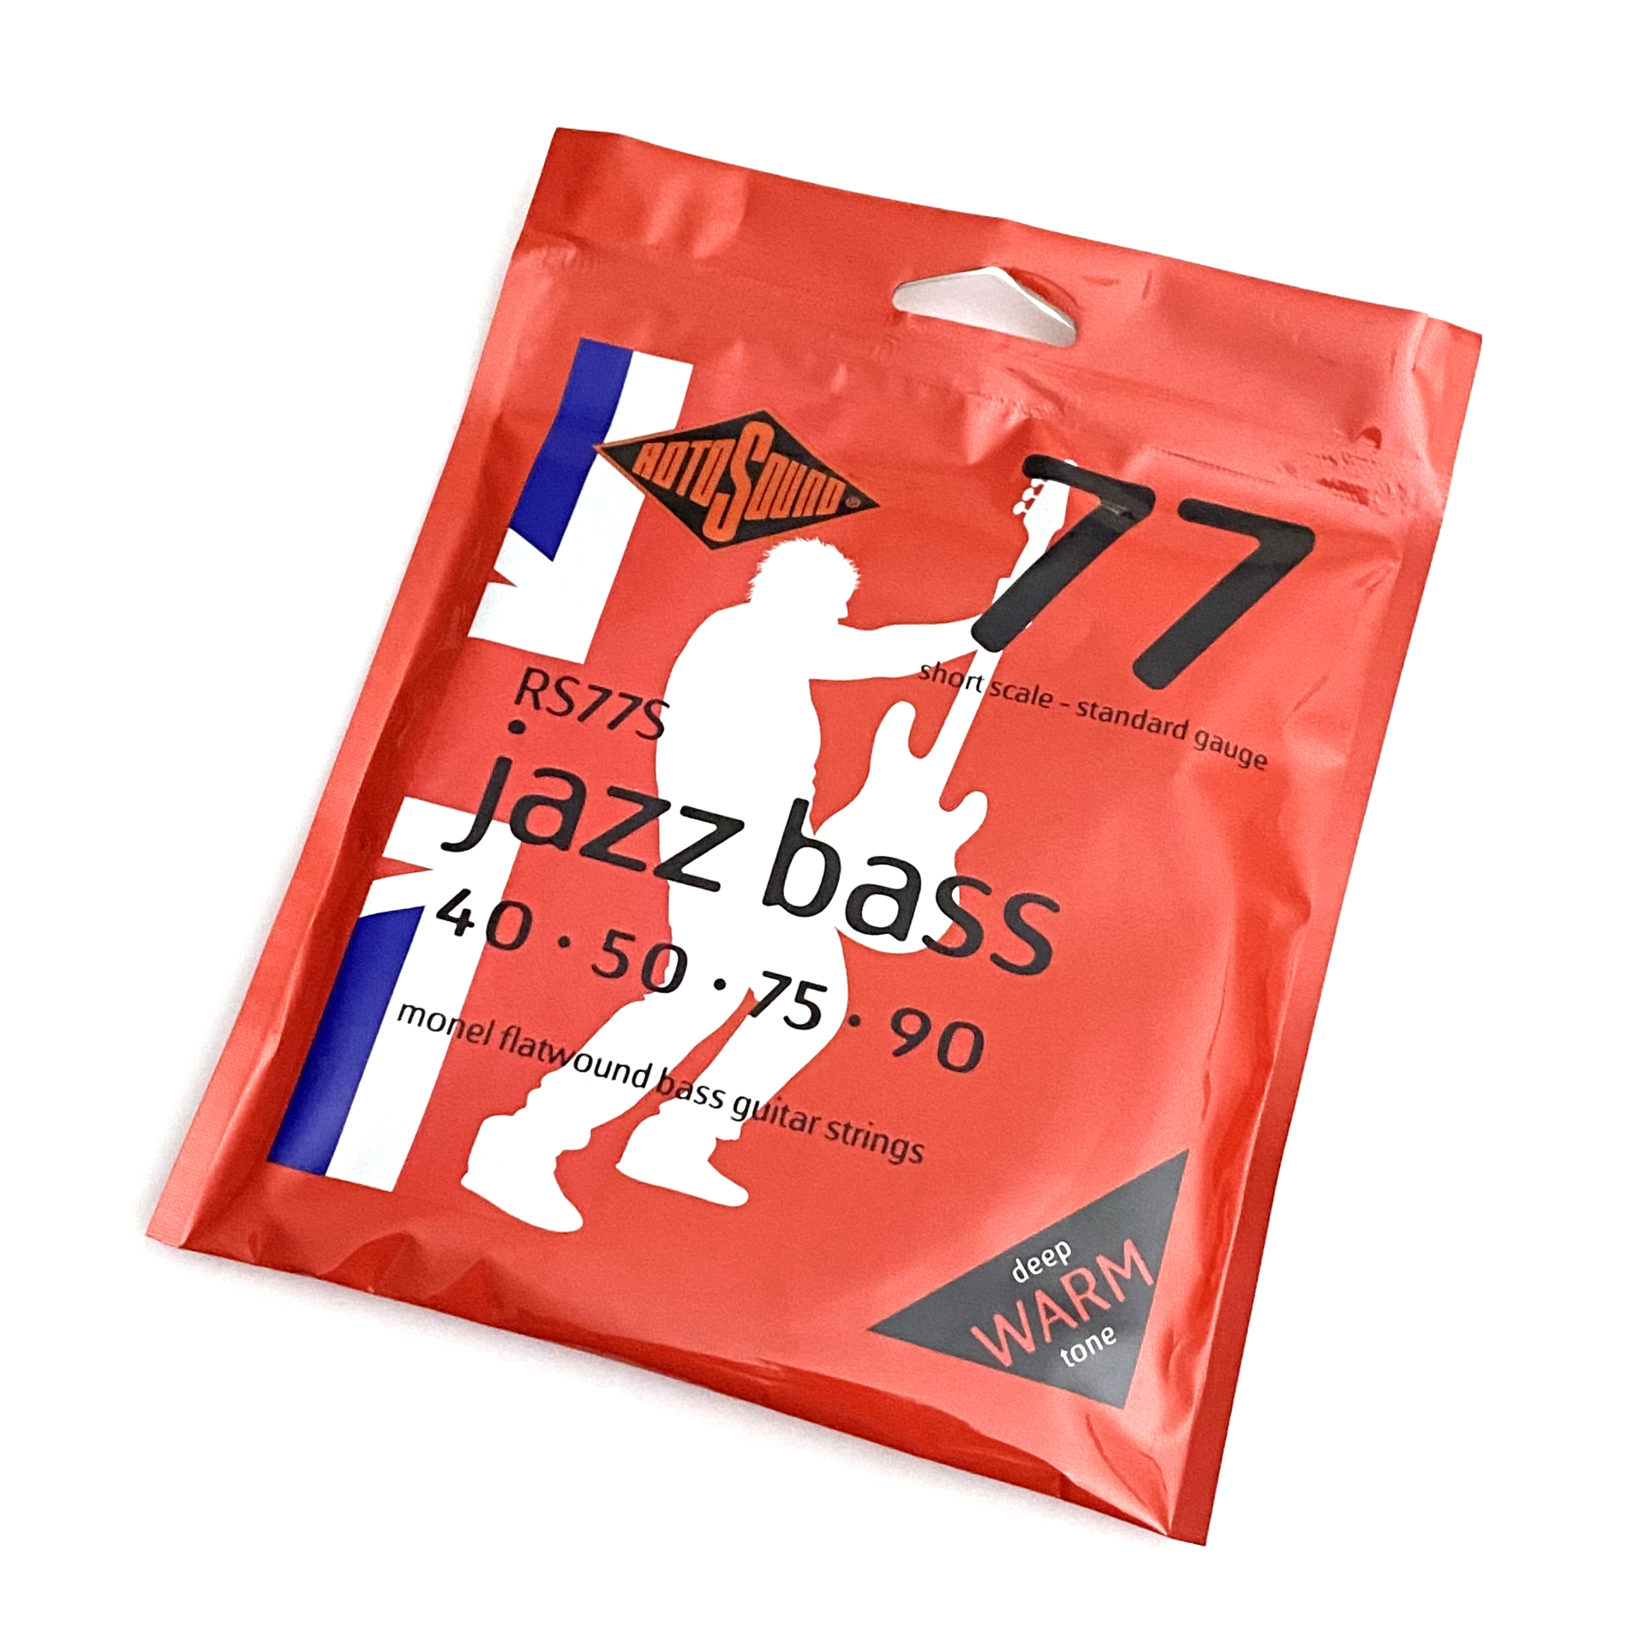 Rotosound Rotosound RS77S Jazz Bass 77 Short Scale Standard Flatwound Bass Strings, 4-String Set (45-105)